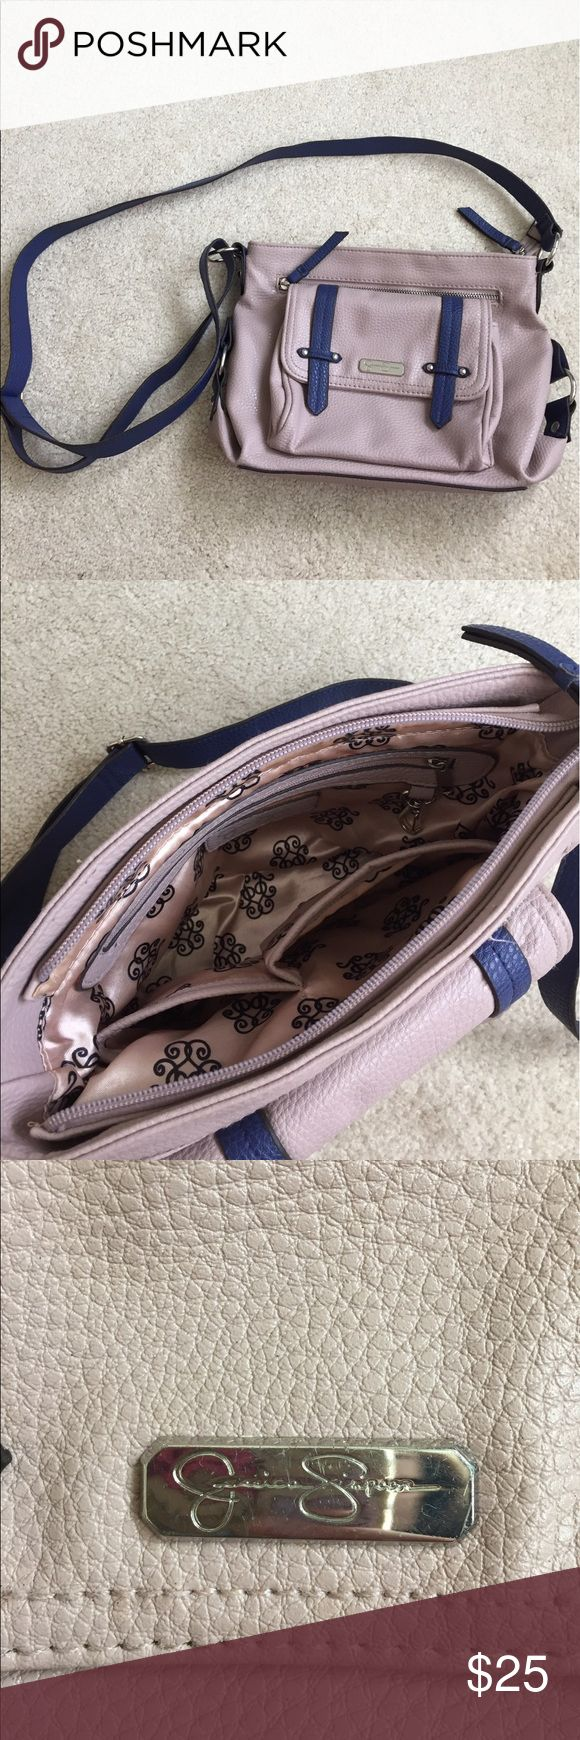 Purse This cross body is lightly used but still super cute and in great condition. Has an adjustable strap and 4 pockets. Willing to accept offers. Jessica Simpson Bags Crossbody Bags